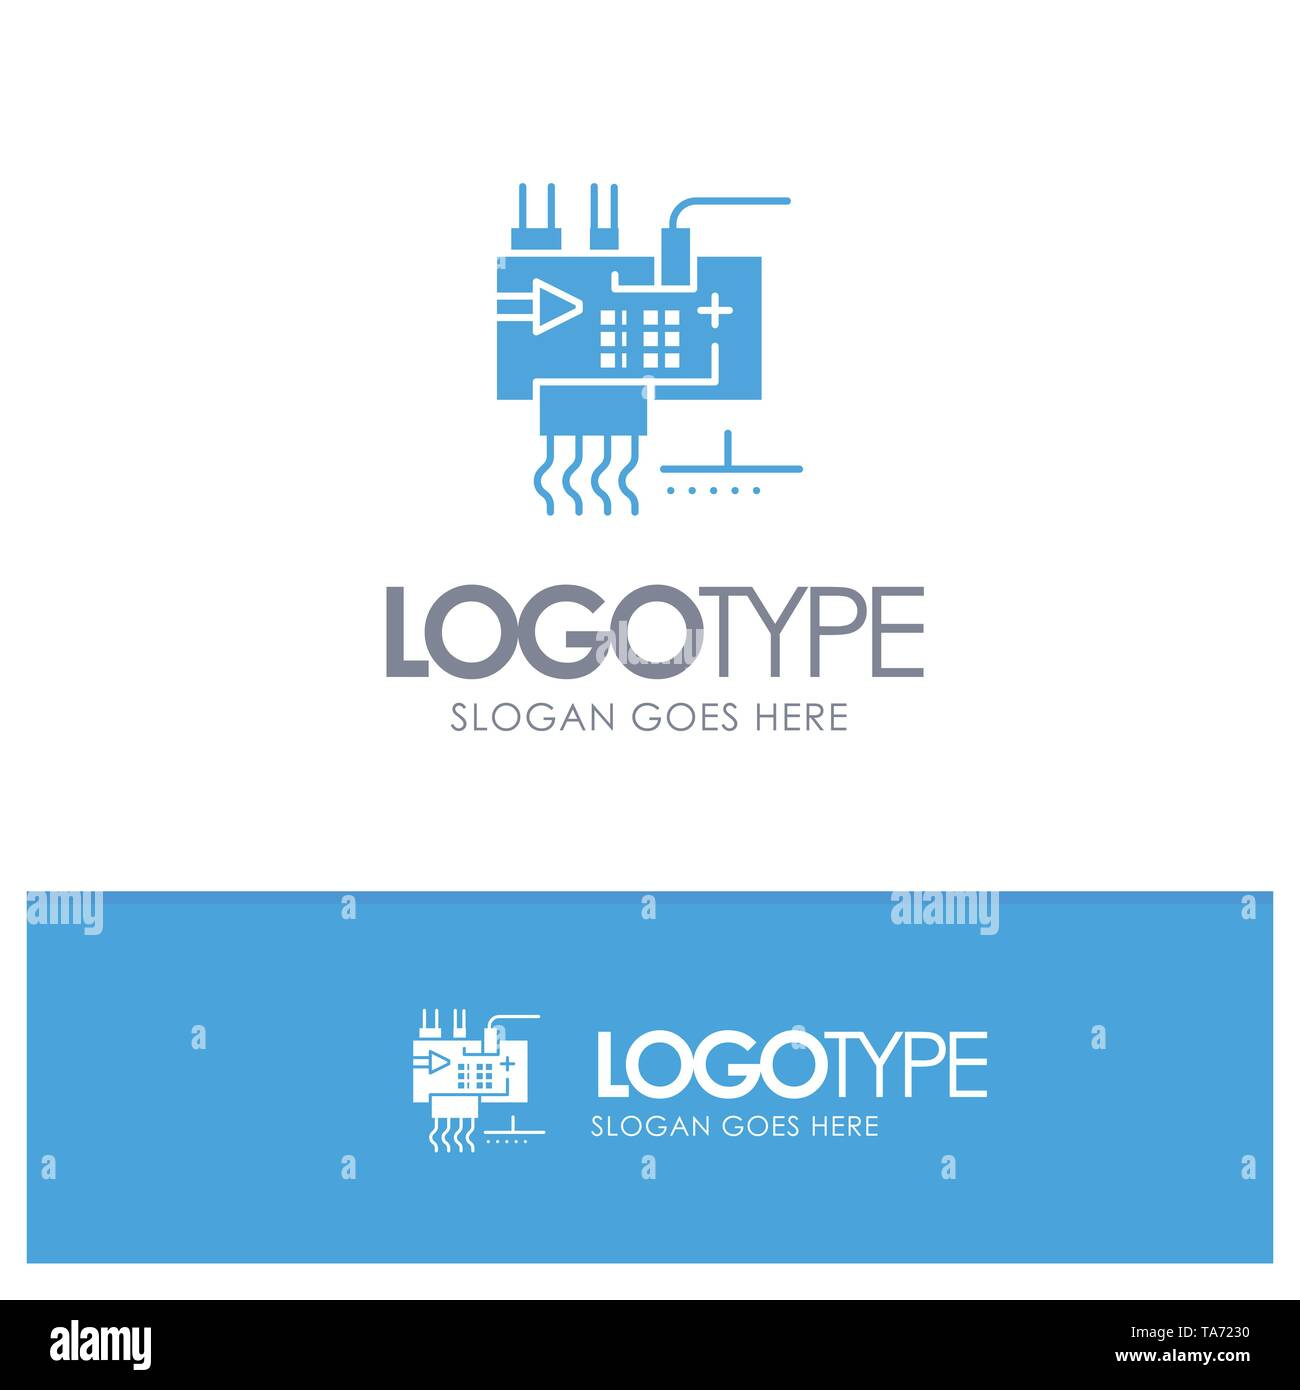 Assemble, Customize, Electronics, Engineering, Parts Blue Solid Logo with place for tagline - Stock Image